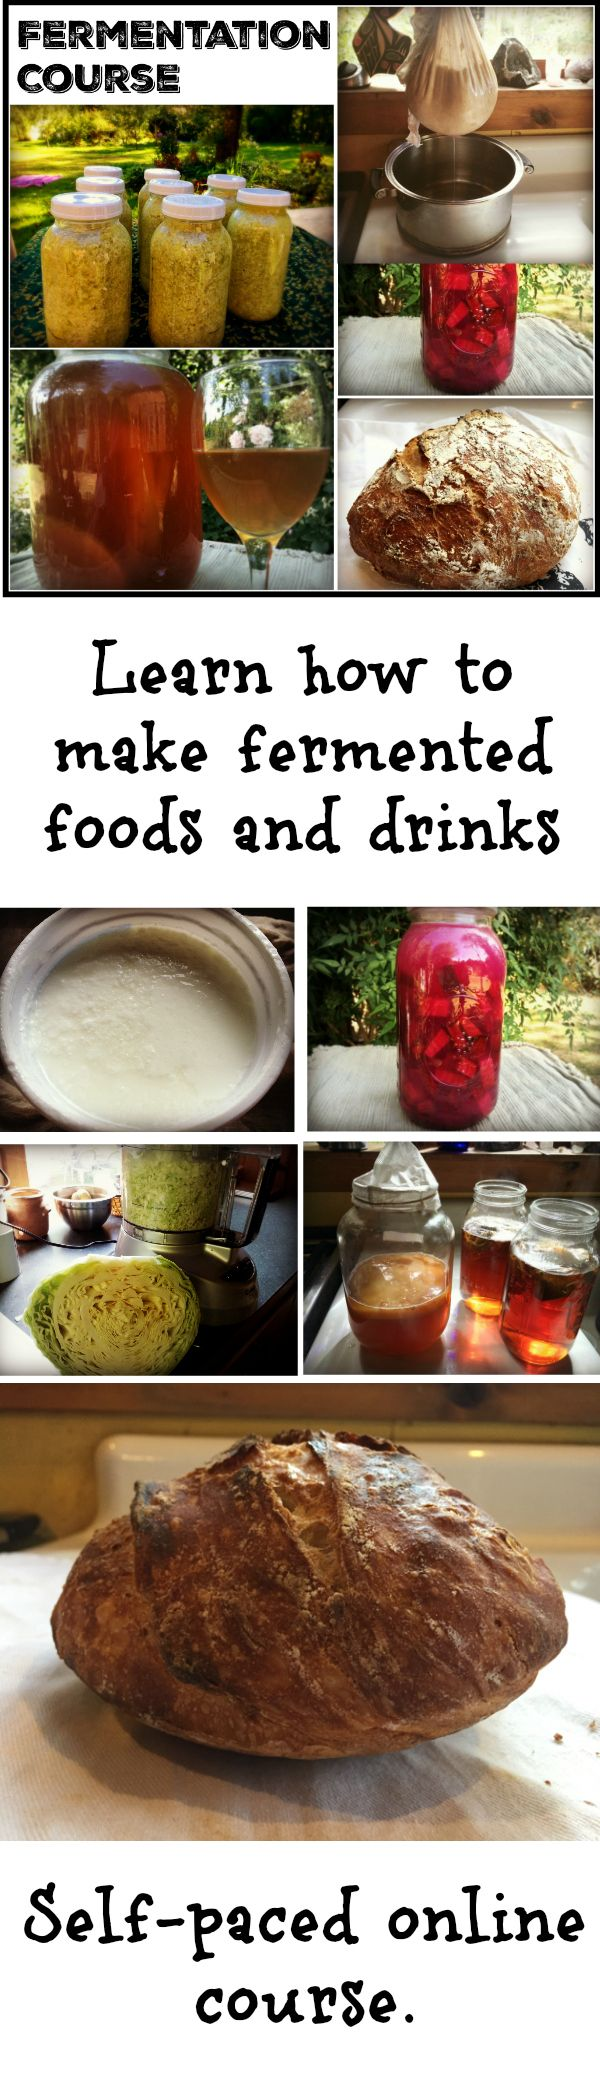 Making your own fermented foods will not only dramatically increase your health, but also save you lots of money! In my online fermentation course, learn to make Greek Yogurt, Beet Kvass, Sauerkraut, Kombucha and No knead bread. You learn with ebooks, demonstration movies filmed in my kitchen, and a private Facebook group.